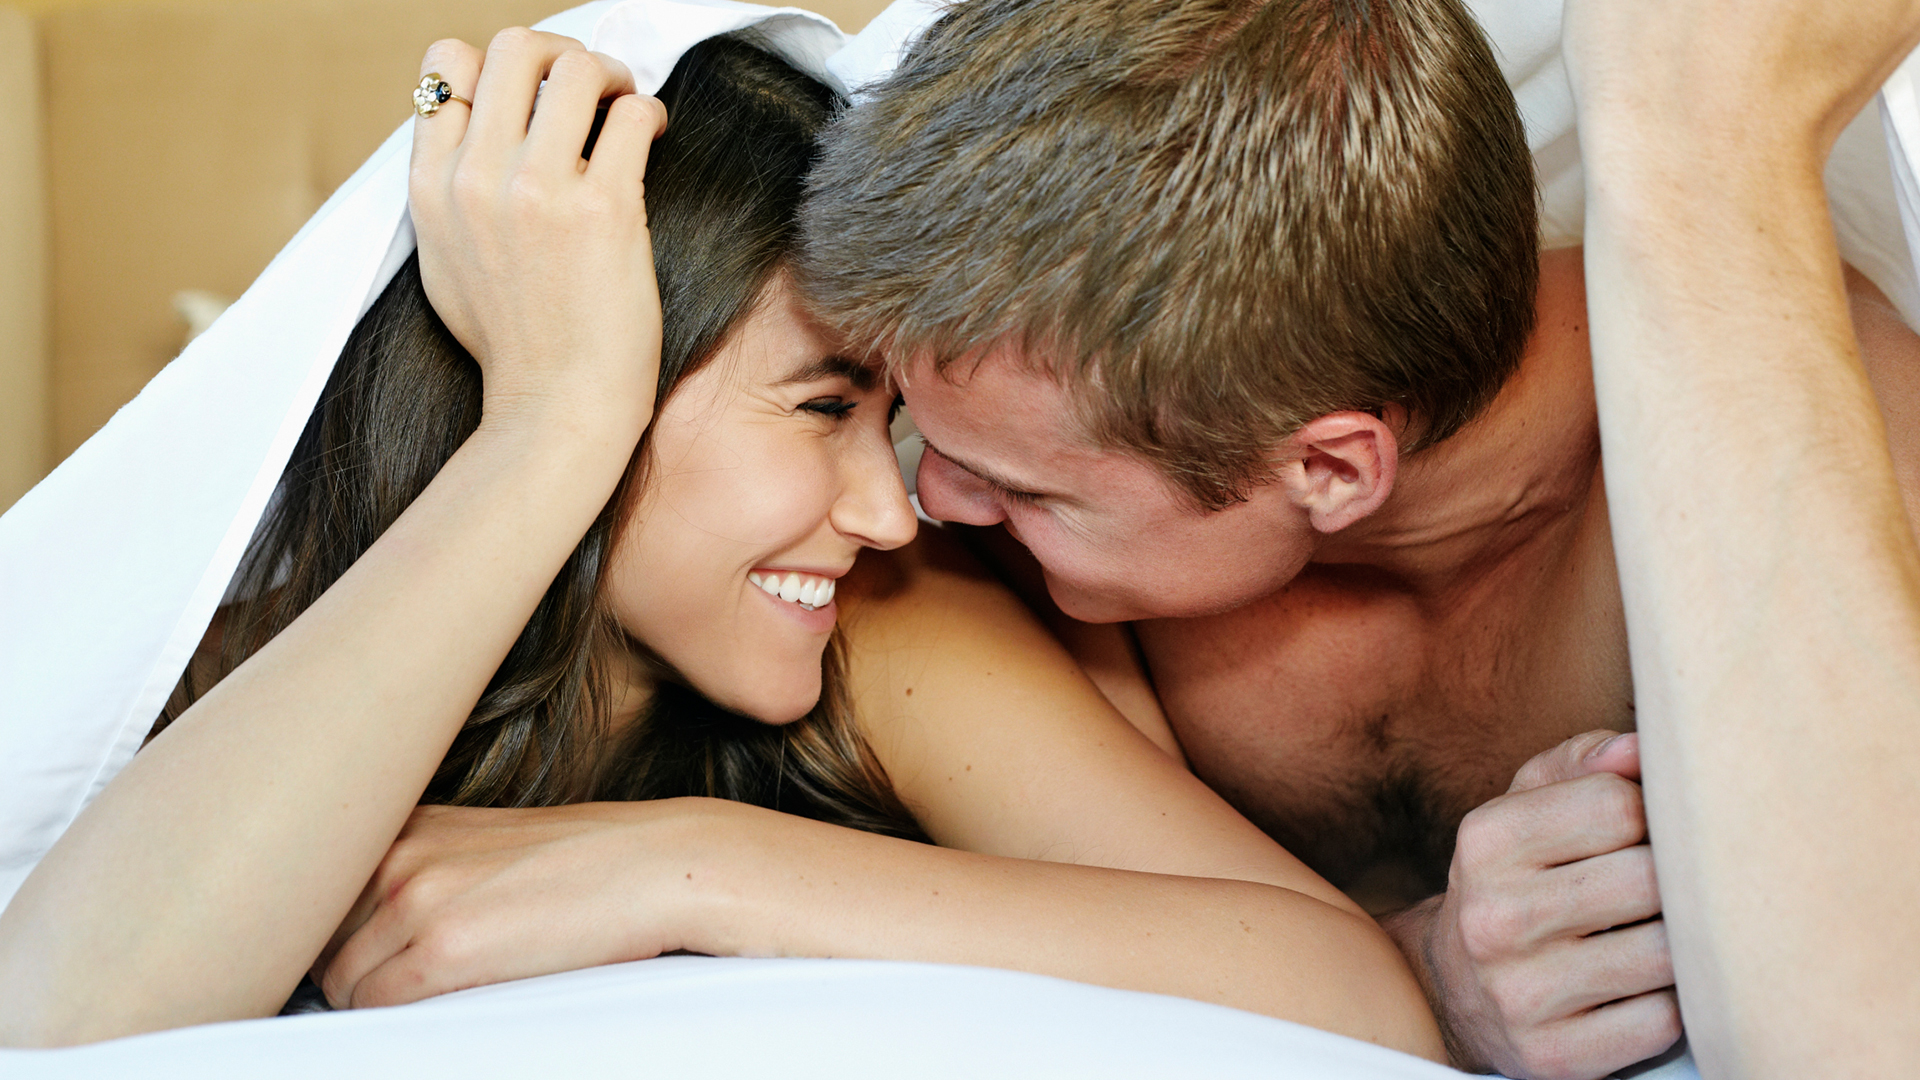 Couple in bed | Sheknows.ca